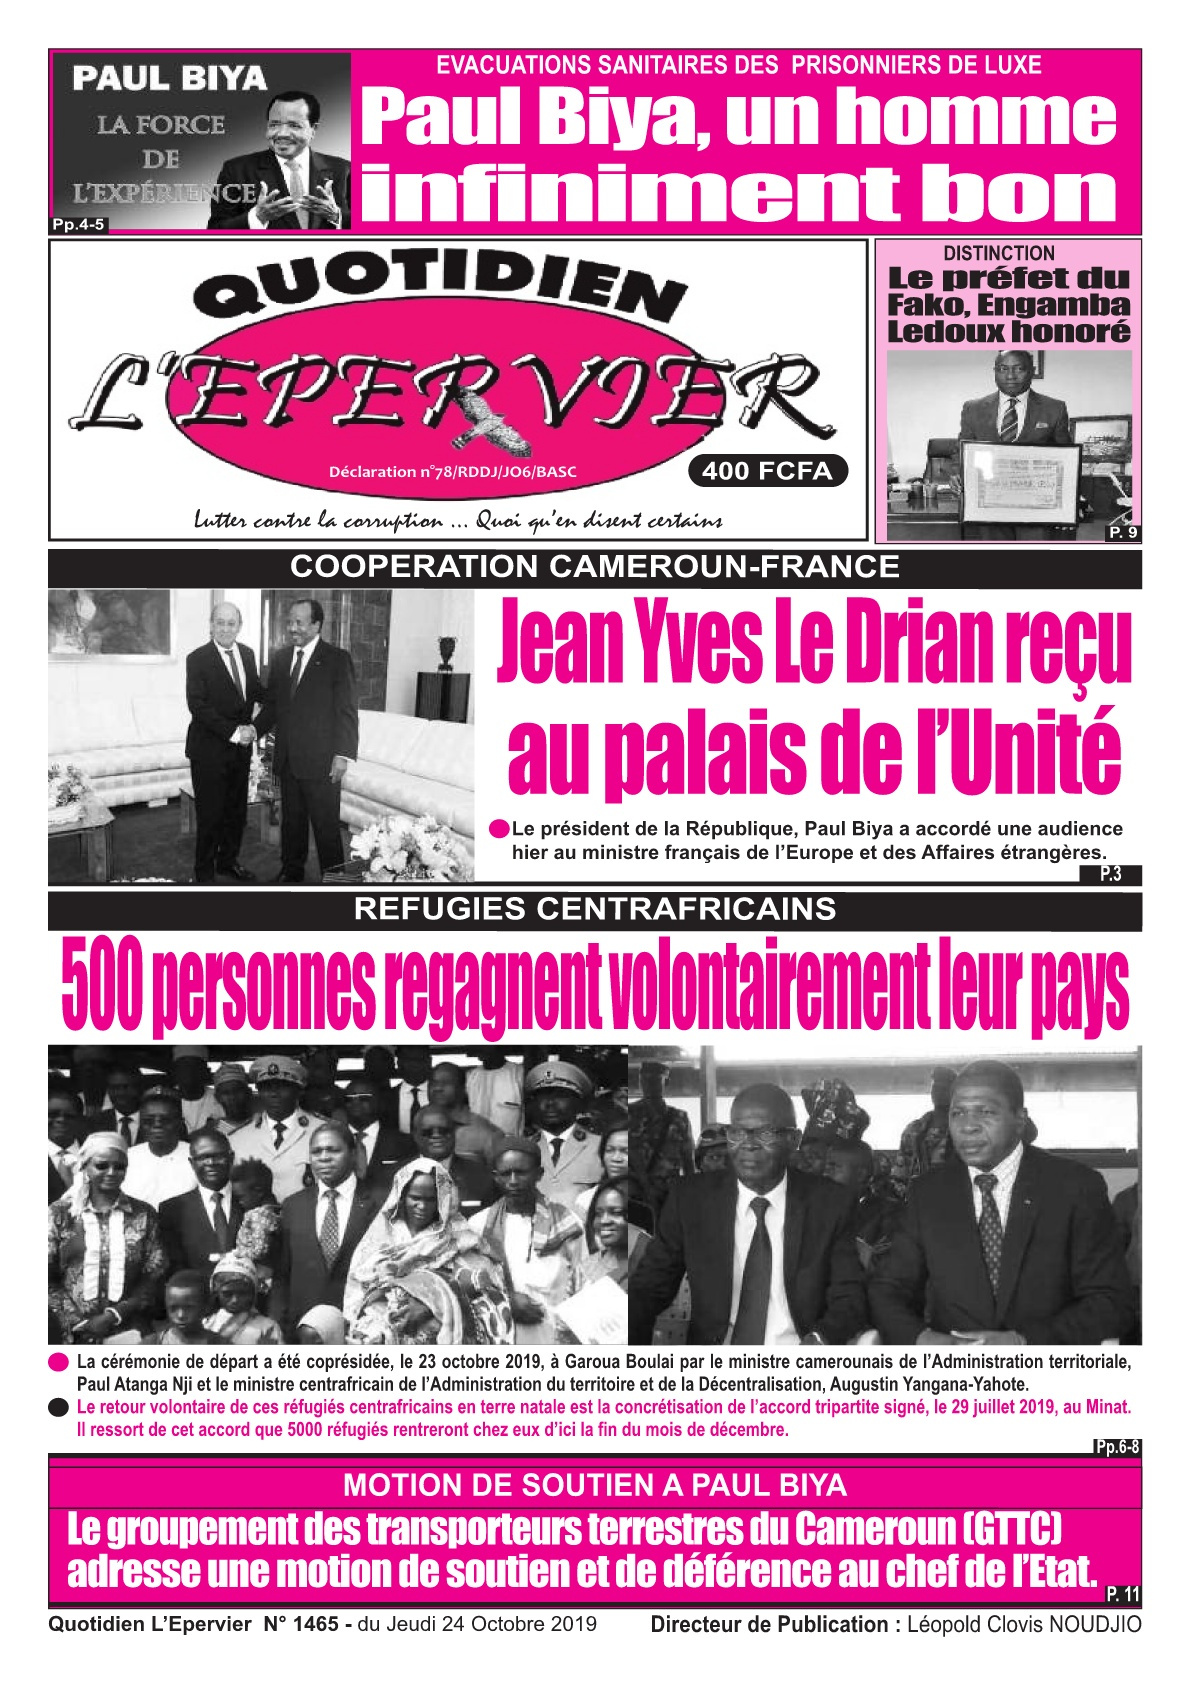 L'Epervier - 24/10/2019